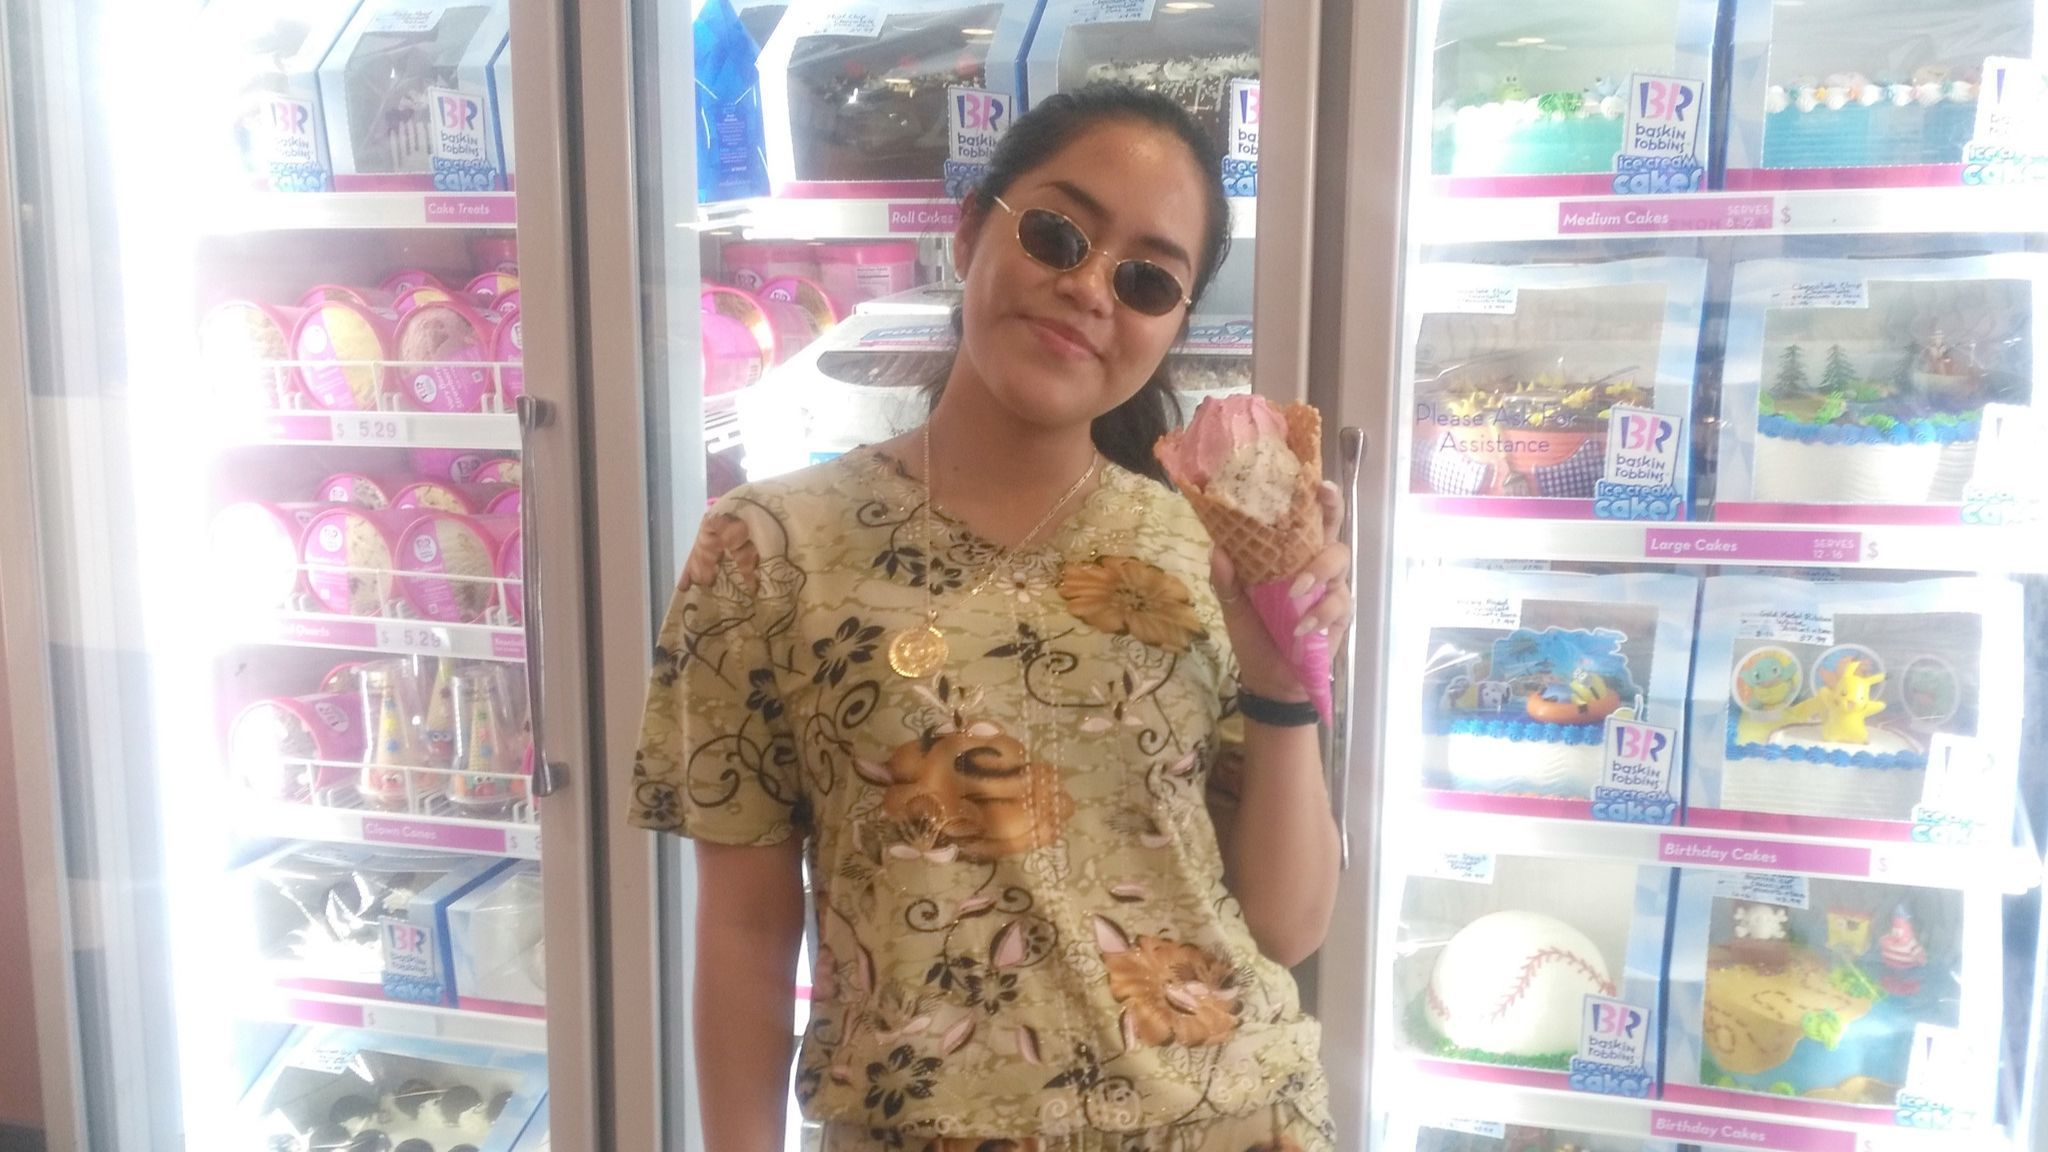 Leslye Vasquez, a Ramona resident and Grossmont College student, enjoys a cherry, mint chocolate chip and Oreo cake-flavored ice-cream at Baskin-Robbins.